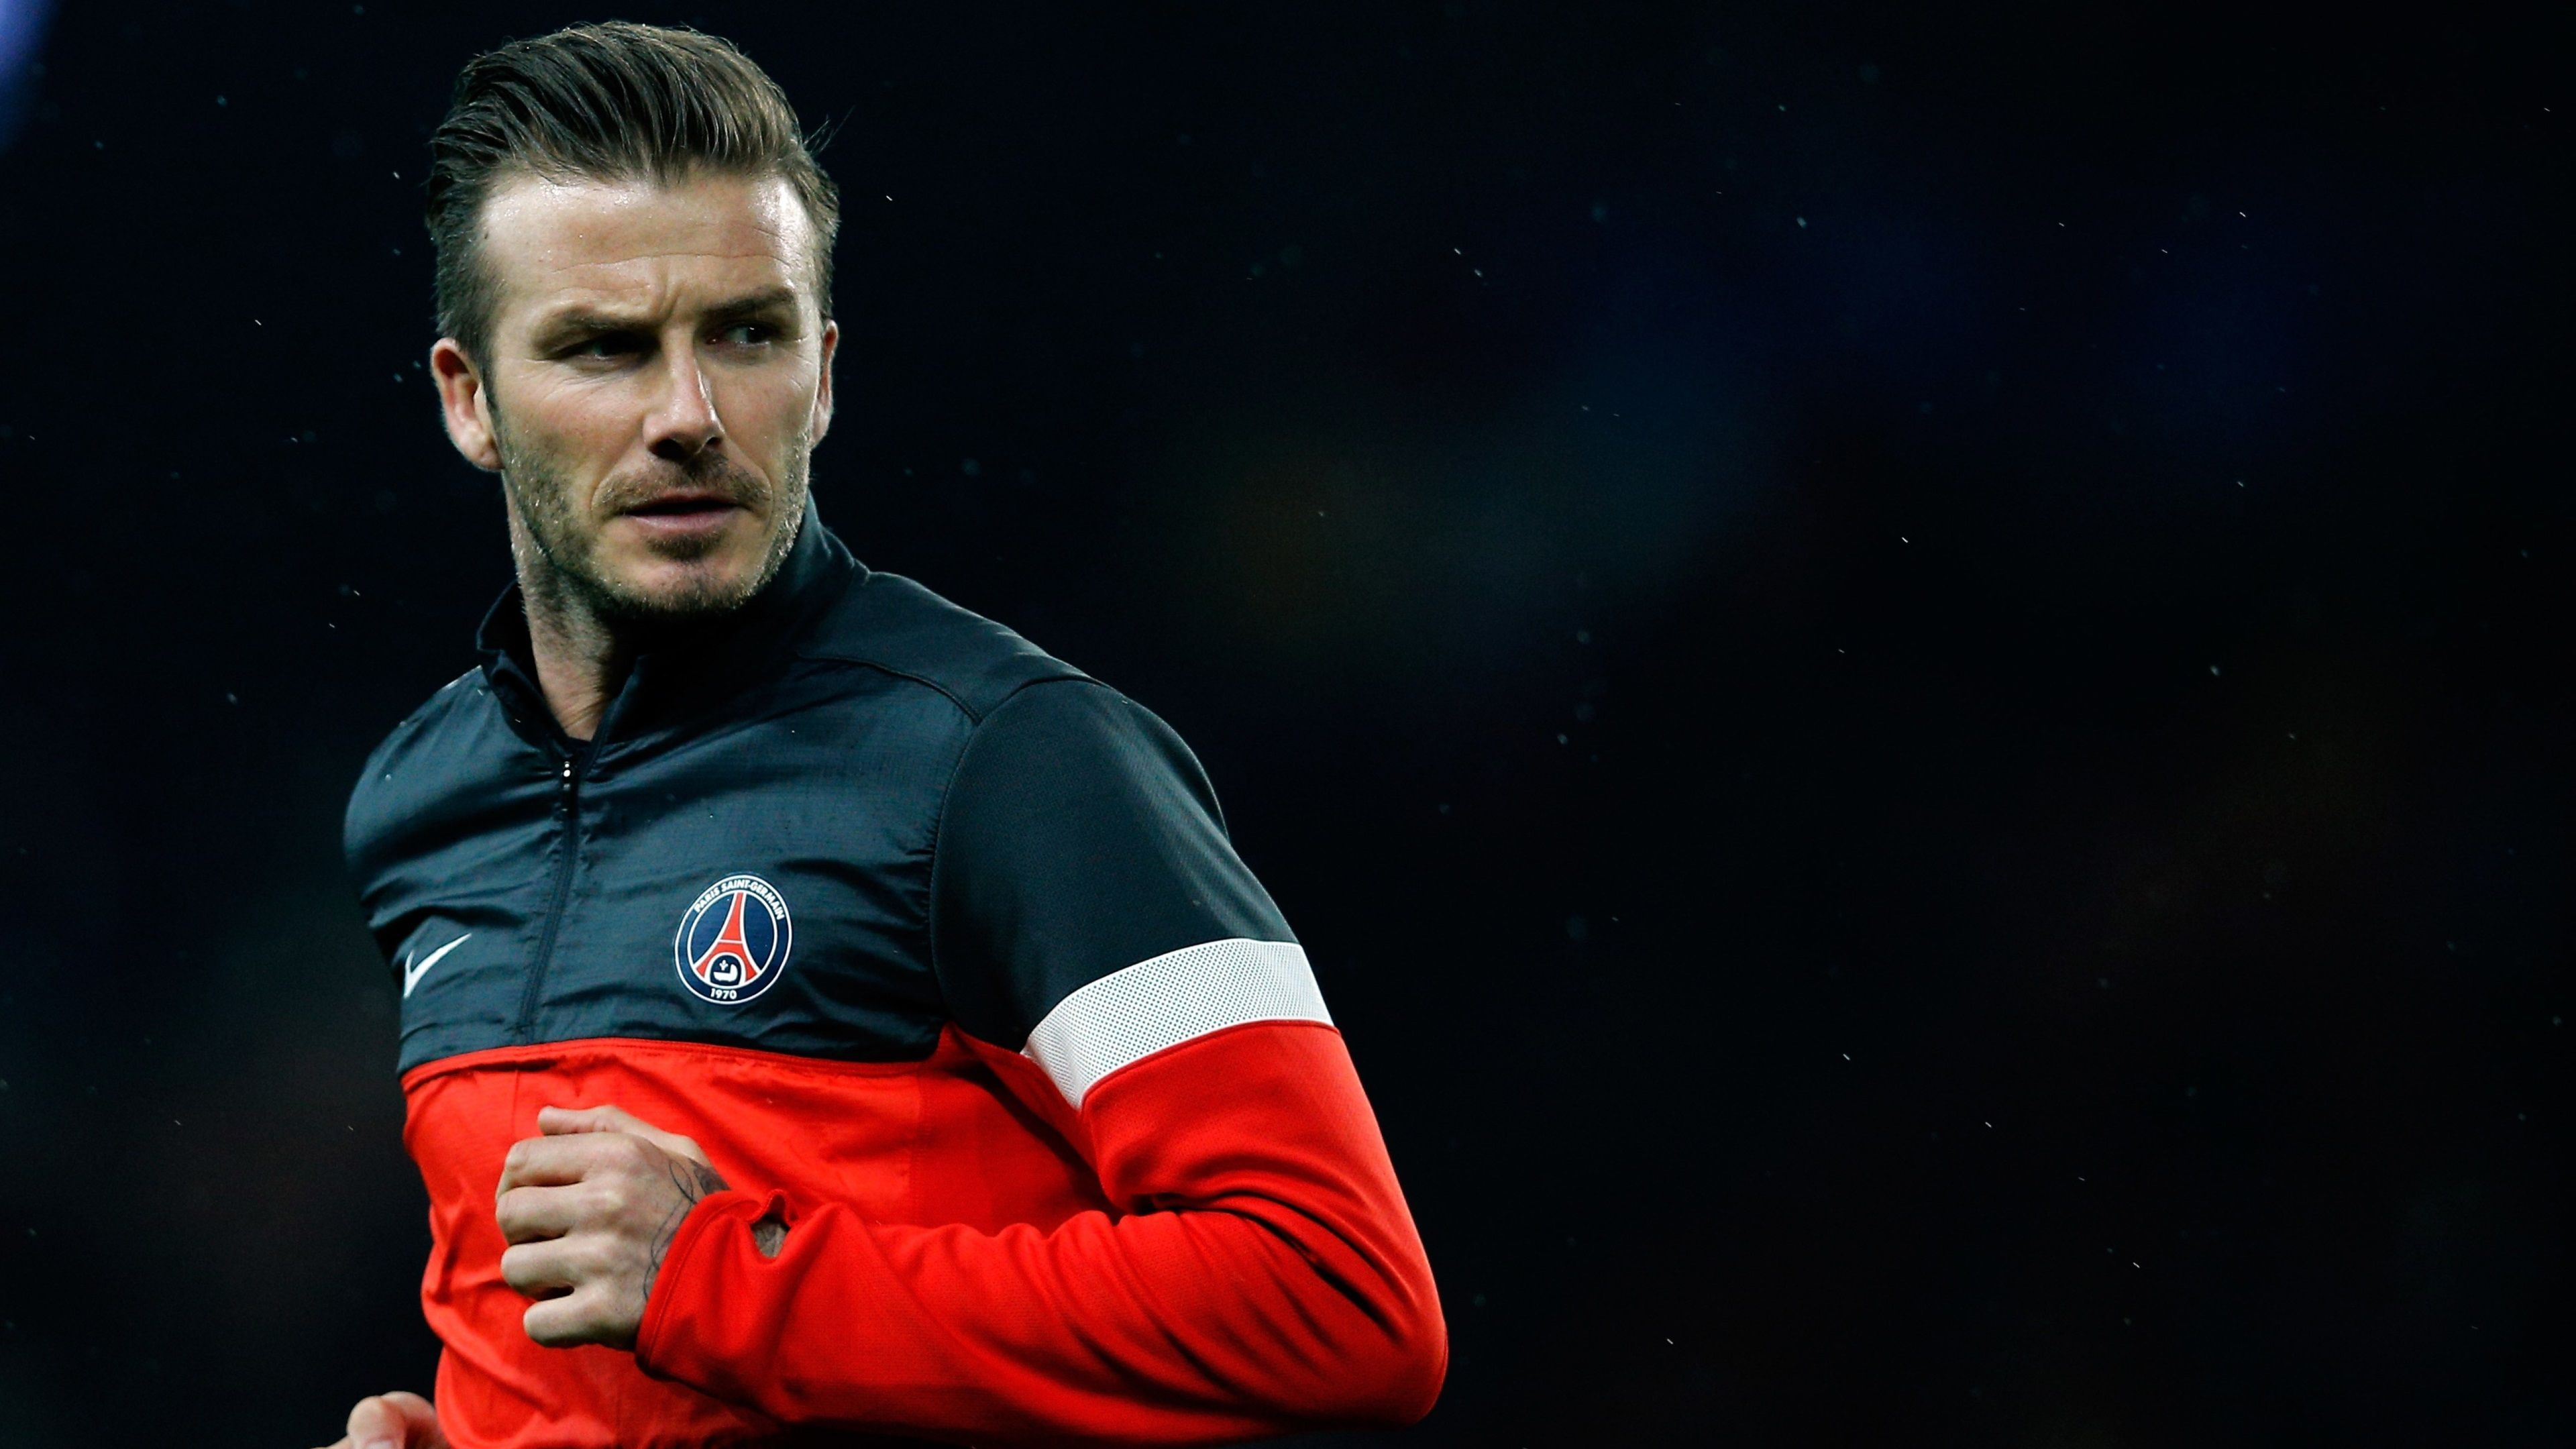 3840x2160 David Beckham 4k Pc Desktop Wallpaper David Beckham Wallpaper David Beckham David Beckham Psg